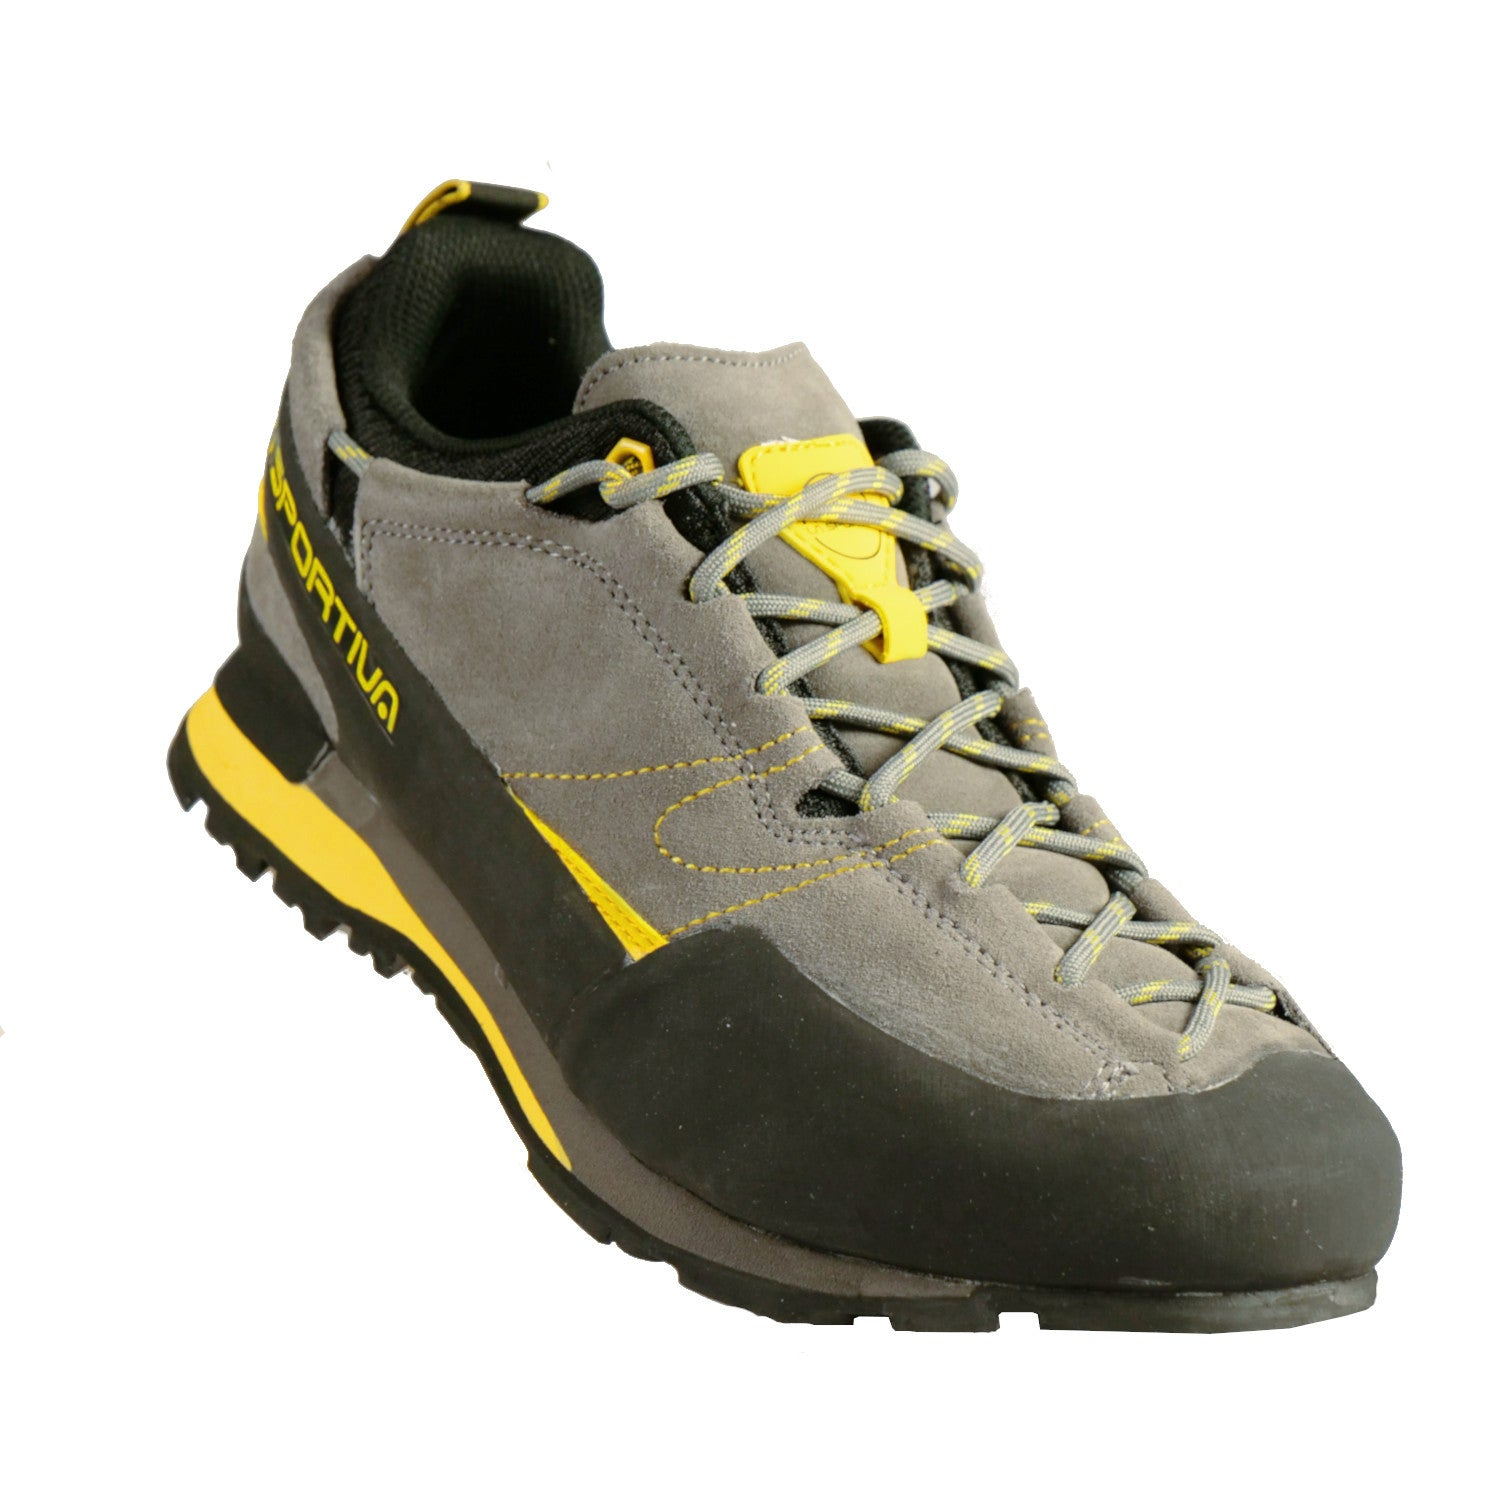 La Sportiva Boulder X approach shoe, front/side view in black, grey and yellow colours